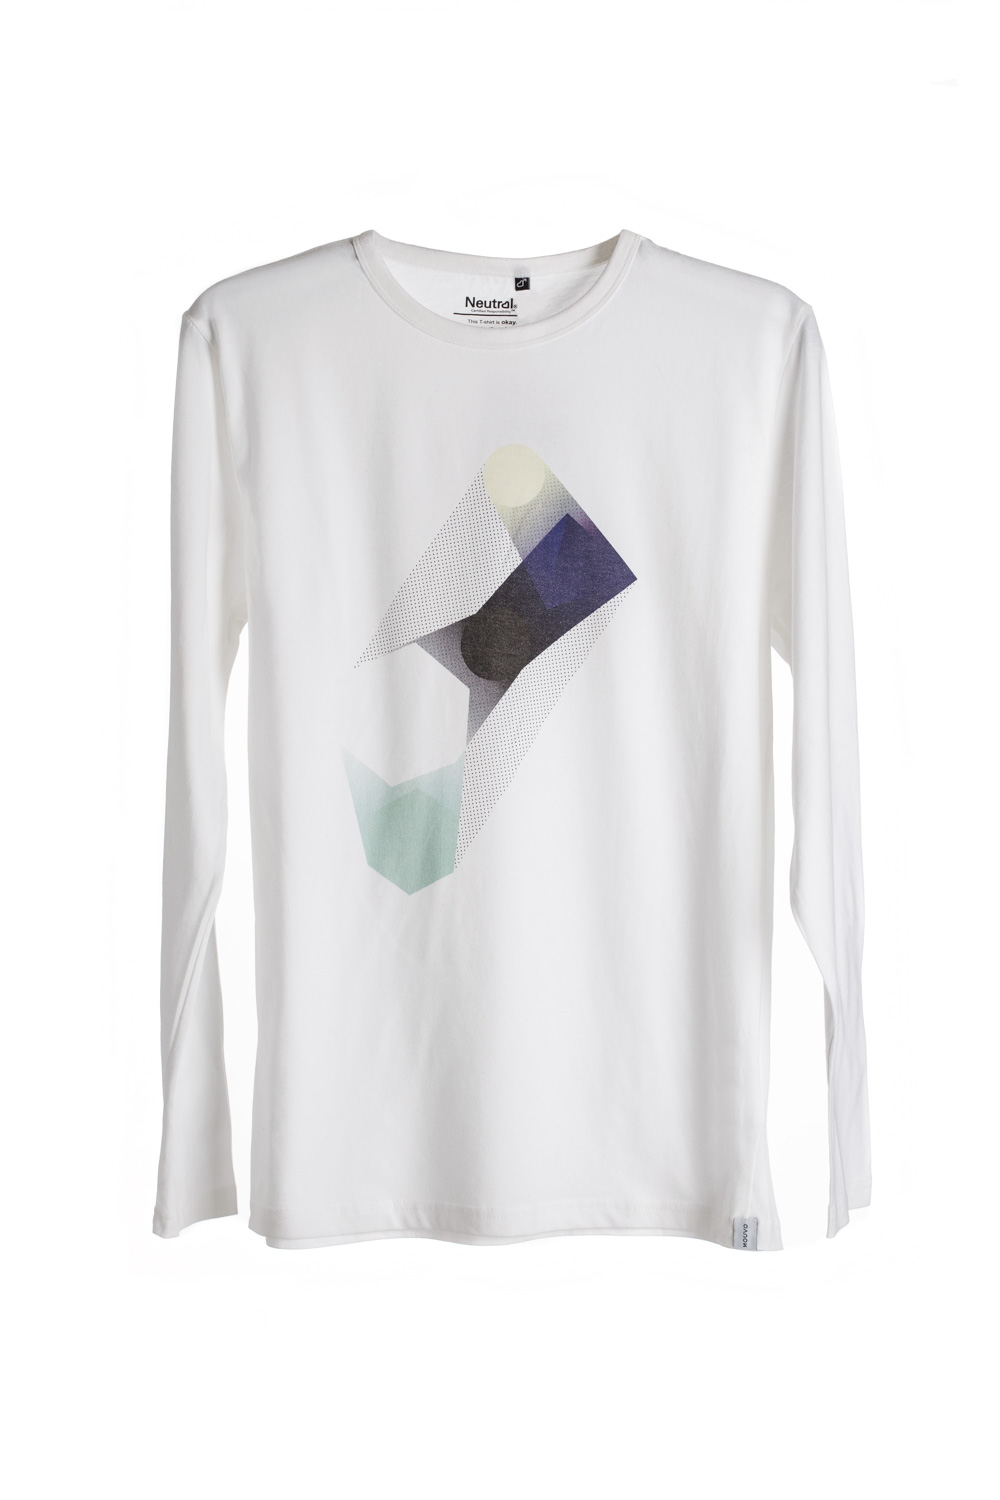 white man Polygon Print T-shirt long sleeve